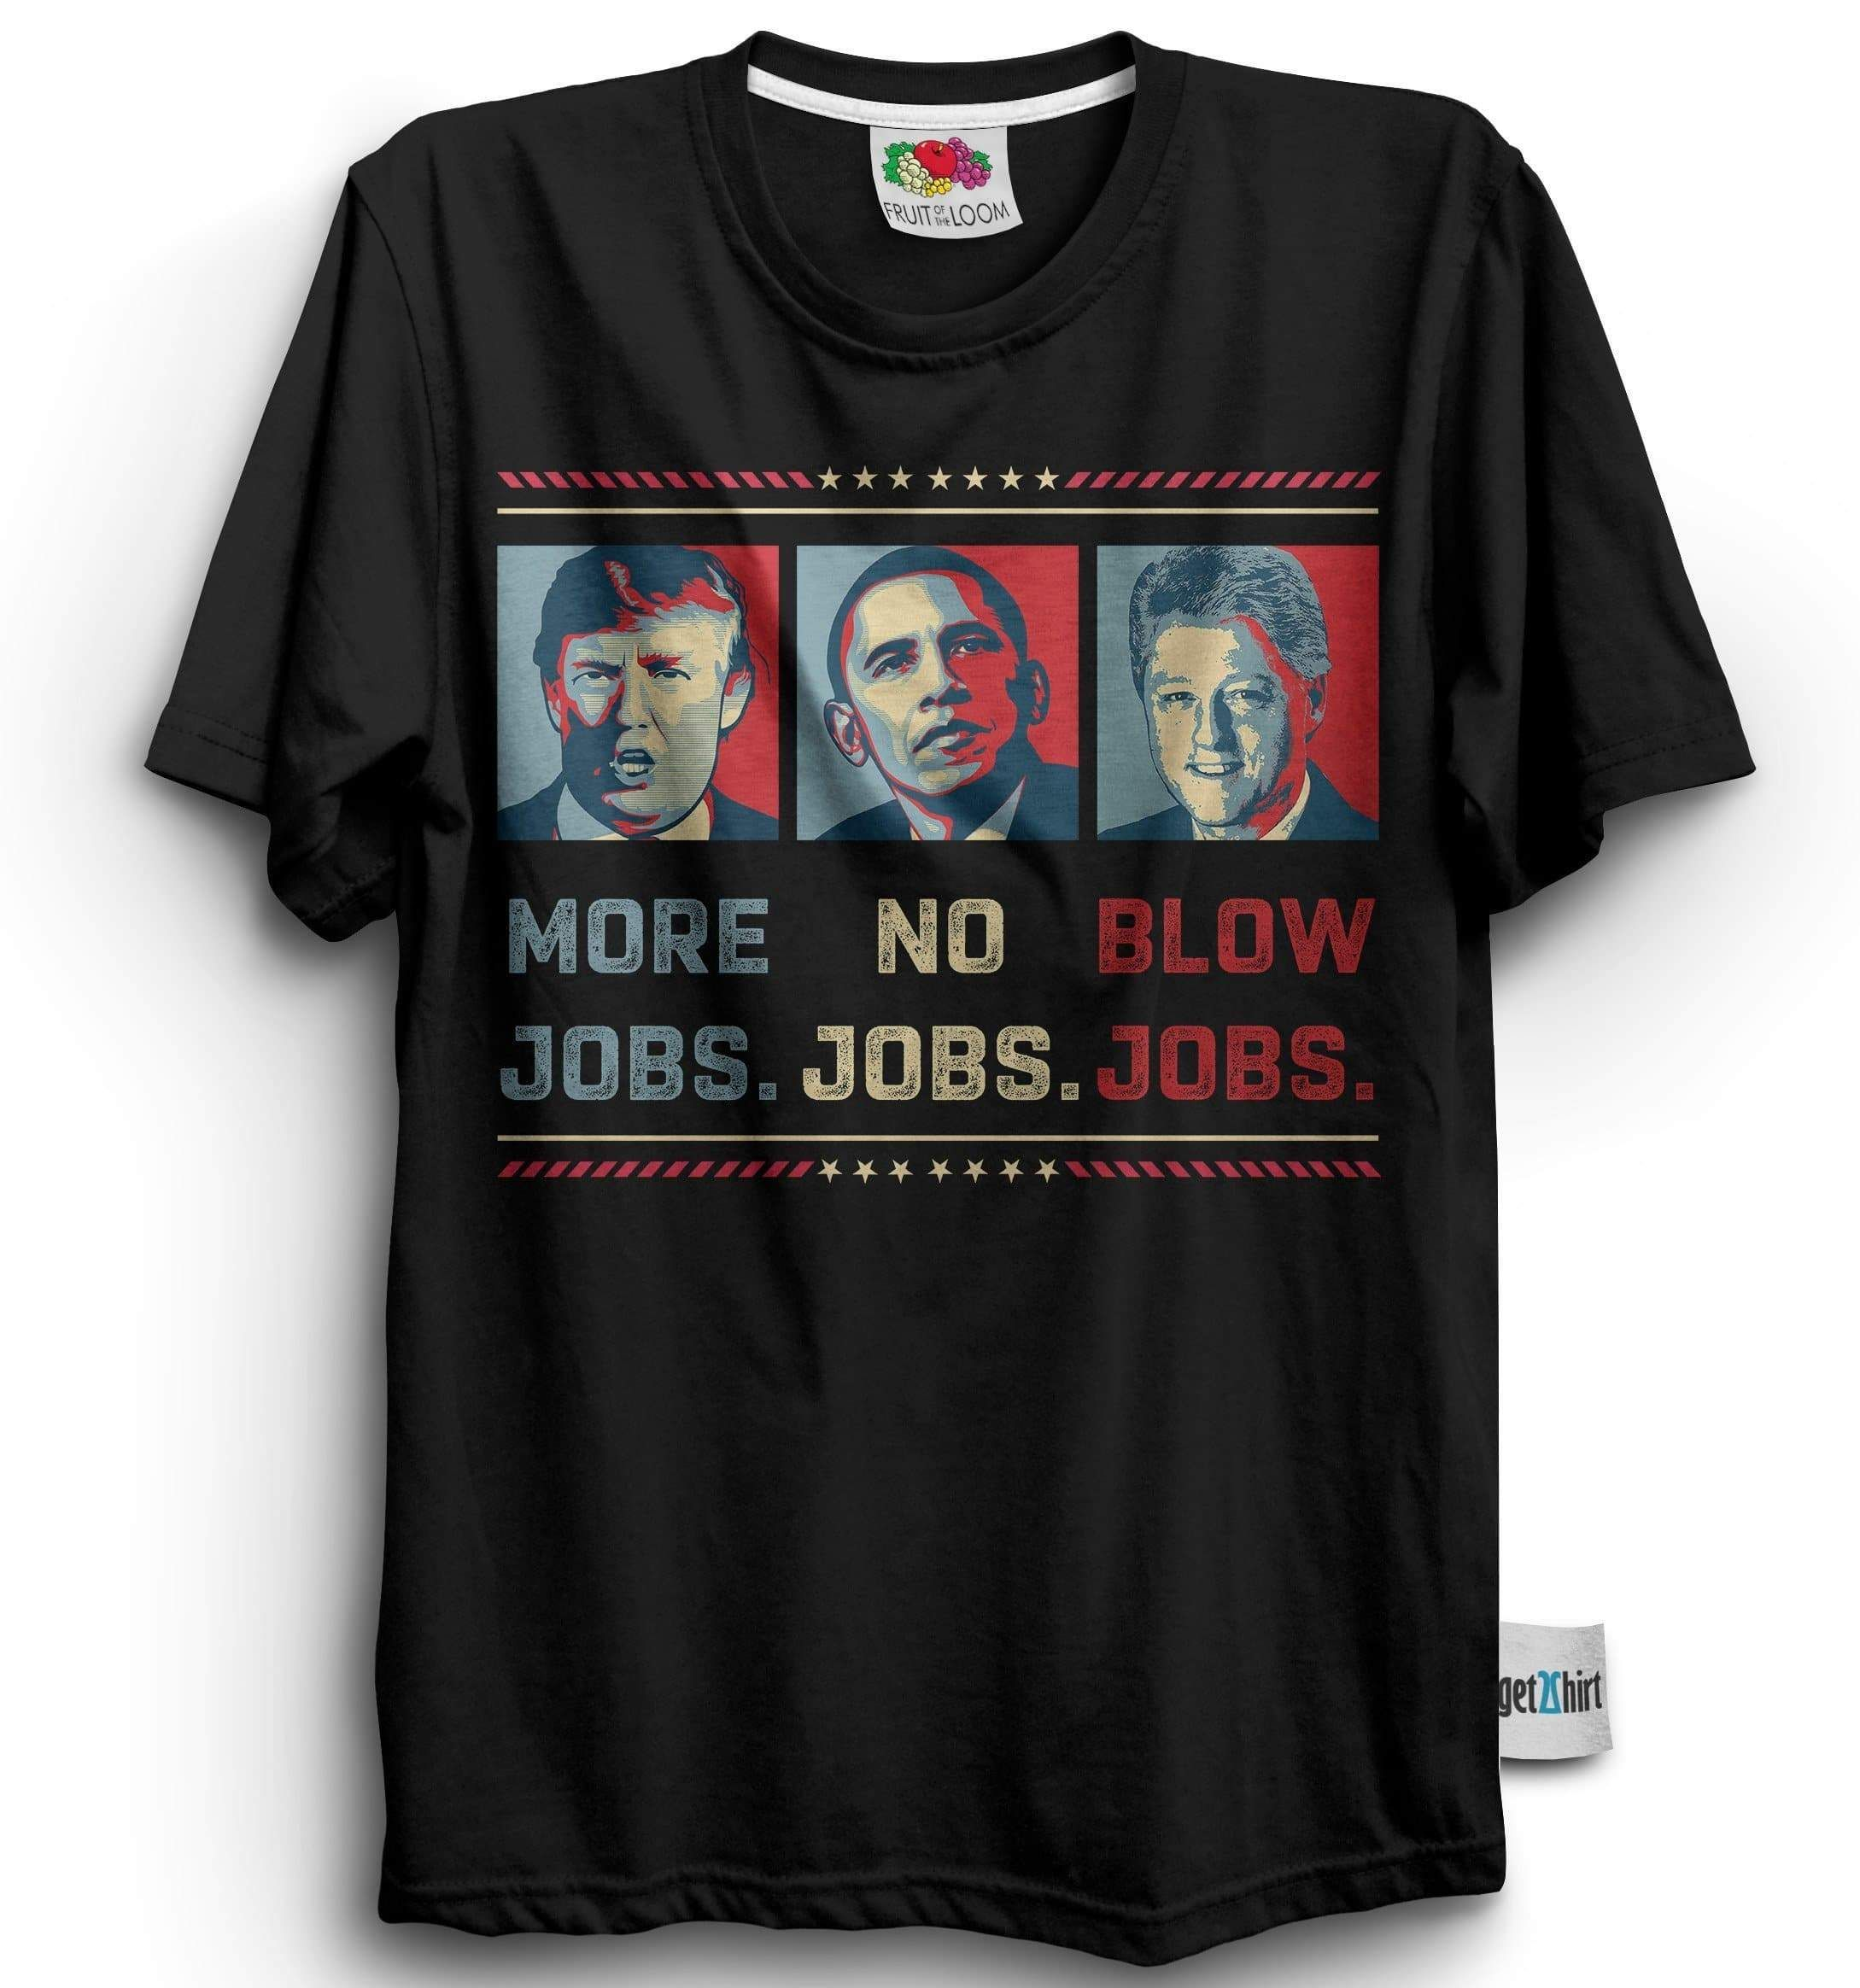 #Trump Obama Clinton Funny Shirt Trump More Jobs Obama No Jobs Clinton Blow Jobs This is our best seller for a reason. Relaxed, tailored and ultra-comfortable, you'll love the way you look in this durable, reliable classic. * Brand:GET2SHIRT * 100% pre-shrunk cotton (heather gray color is 90% cotton/10% polyester, light heather gray is 98% cotton/2% polyester, heather black is 50% cotton/50% polyester)   Fabric Weight: 5.0 oz (mid-weight) * Double-stitched seams at shoulder